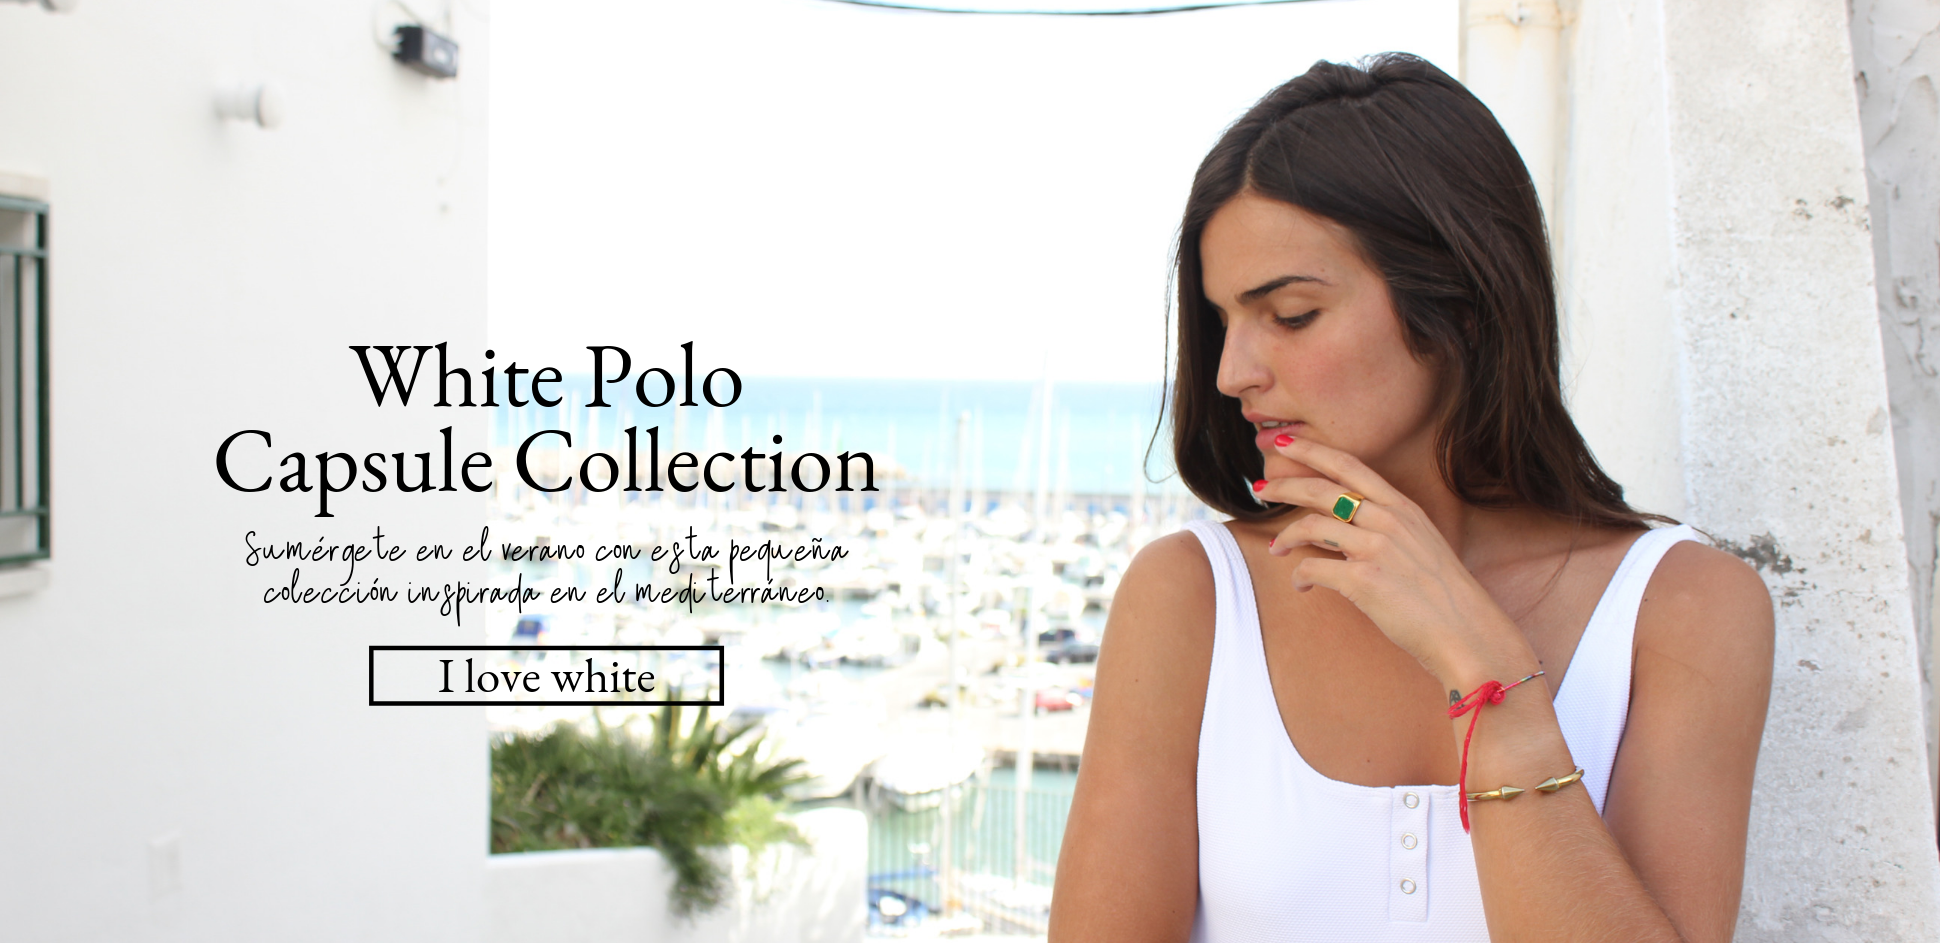 White Polo Capsule Collection